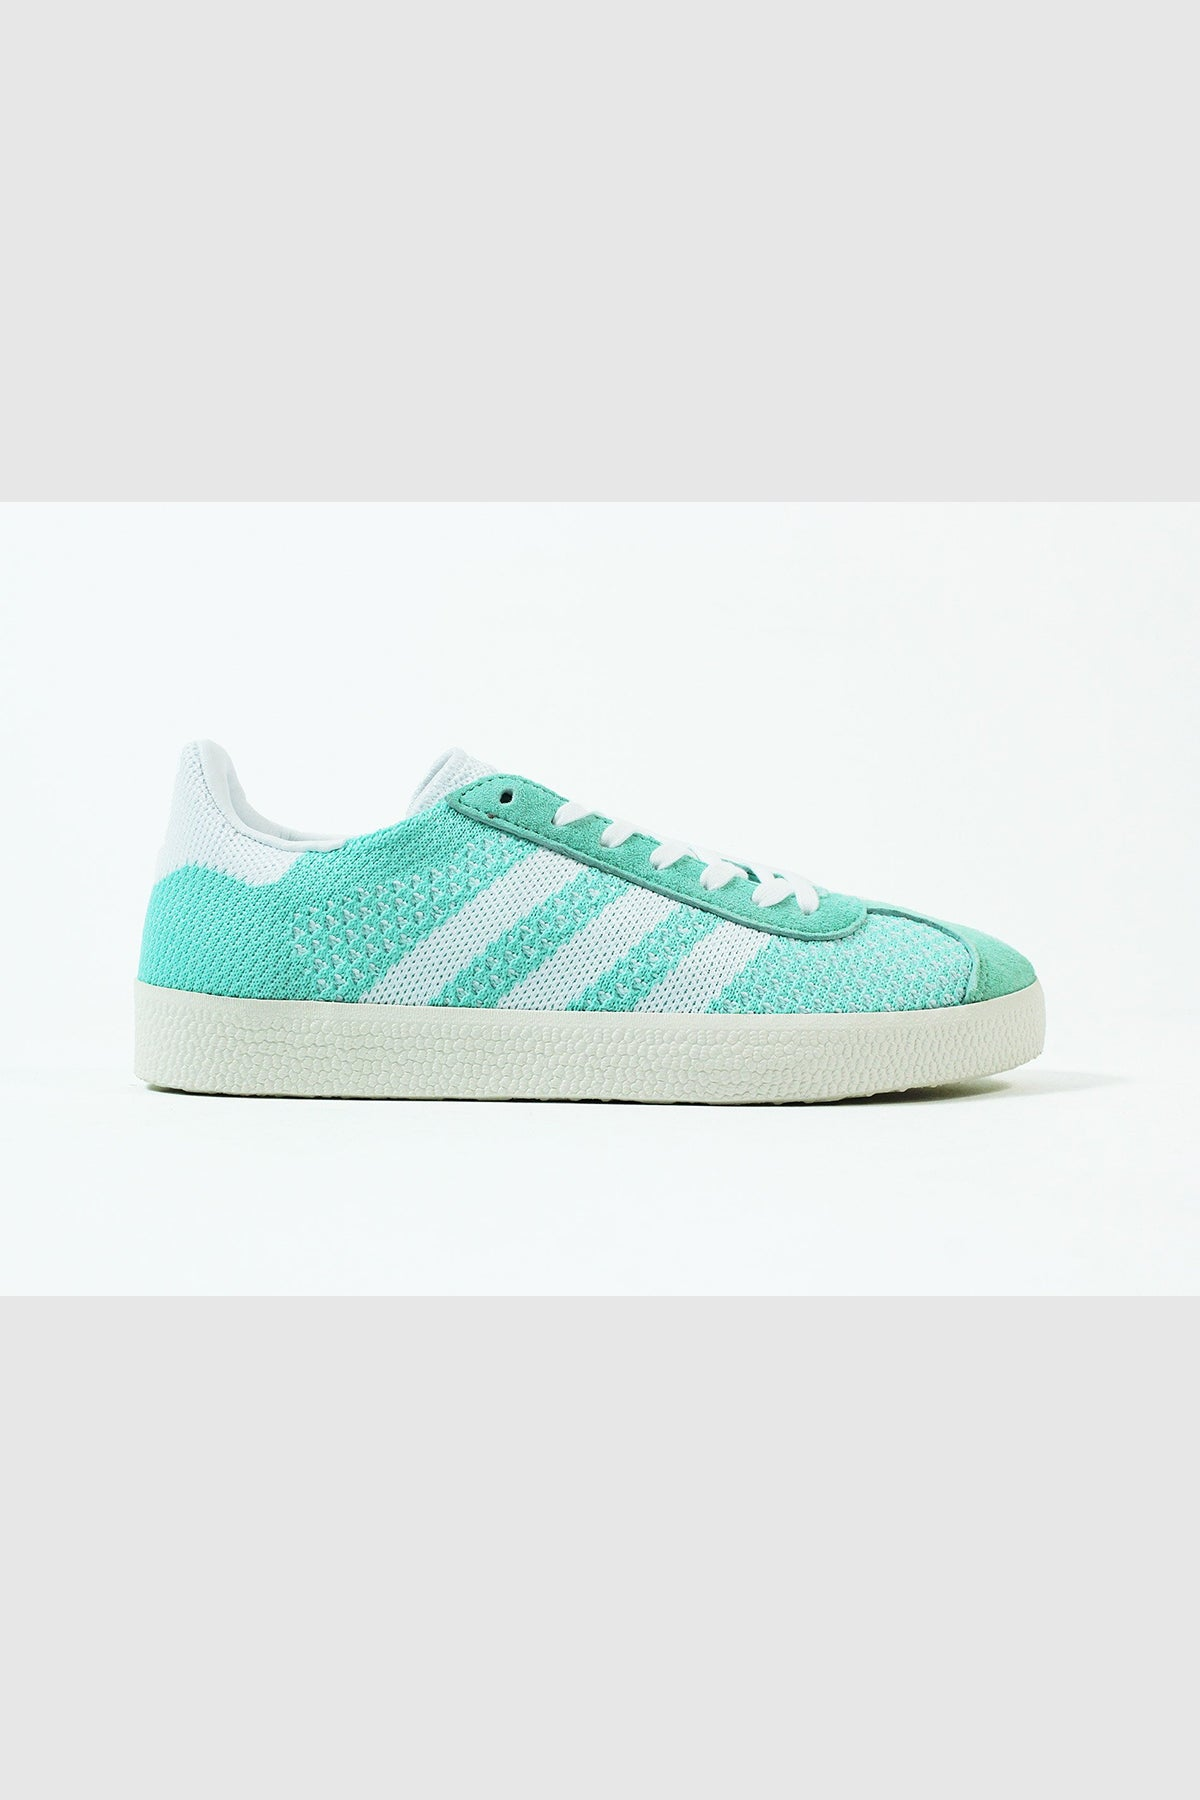 07e139c85ac Adidas - Gazelle Primeknit Women (Easy Green  White) - Sneakerworld